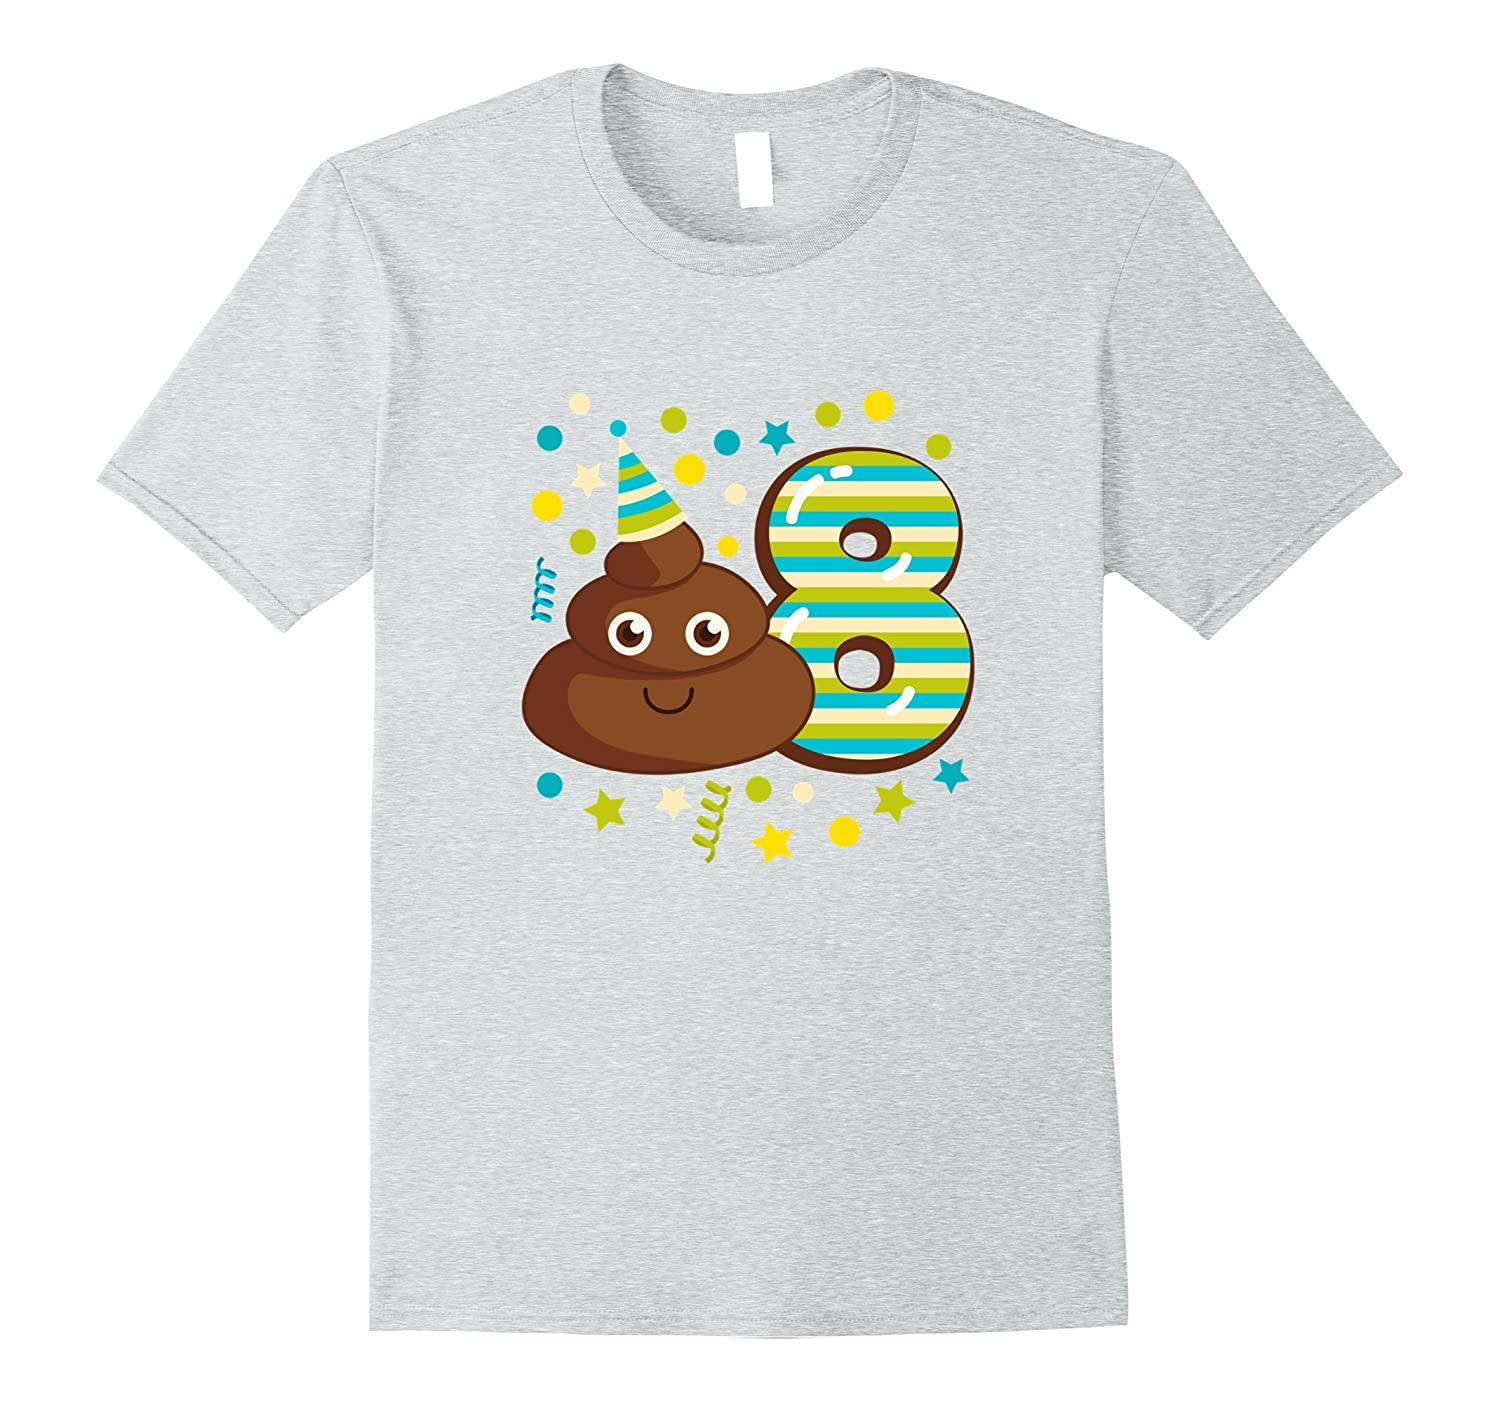 Kids Birthday Parties 8 Year Old Party Shirt Girl Or Boy PL